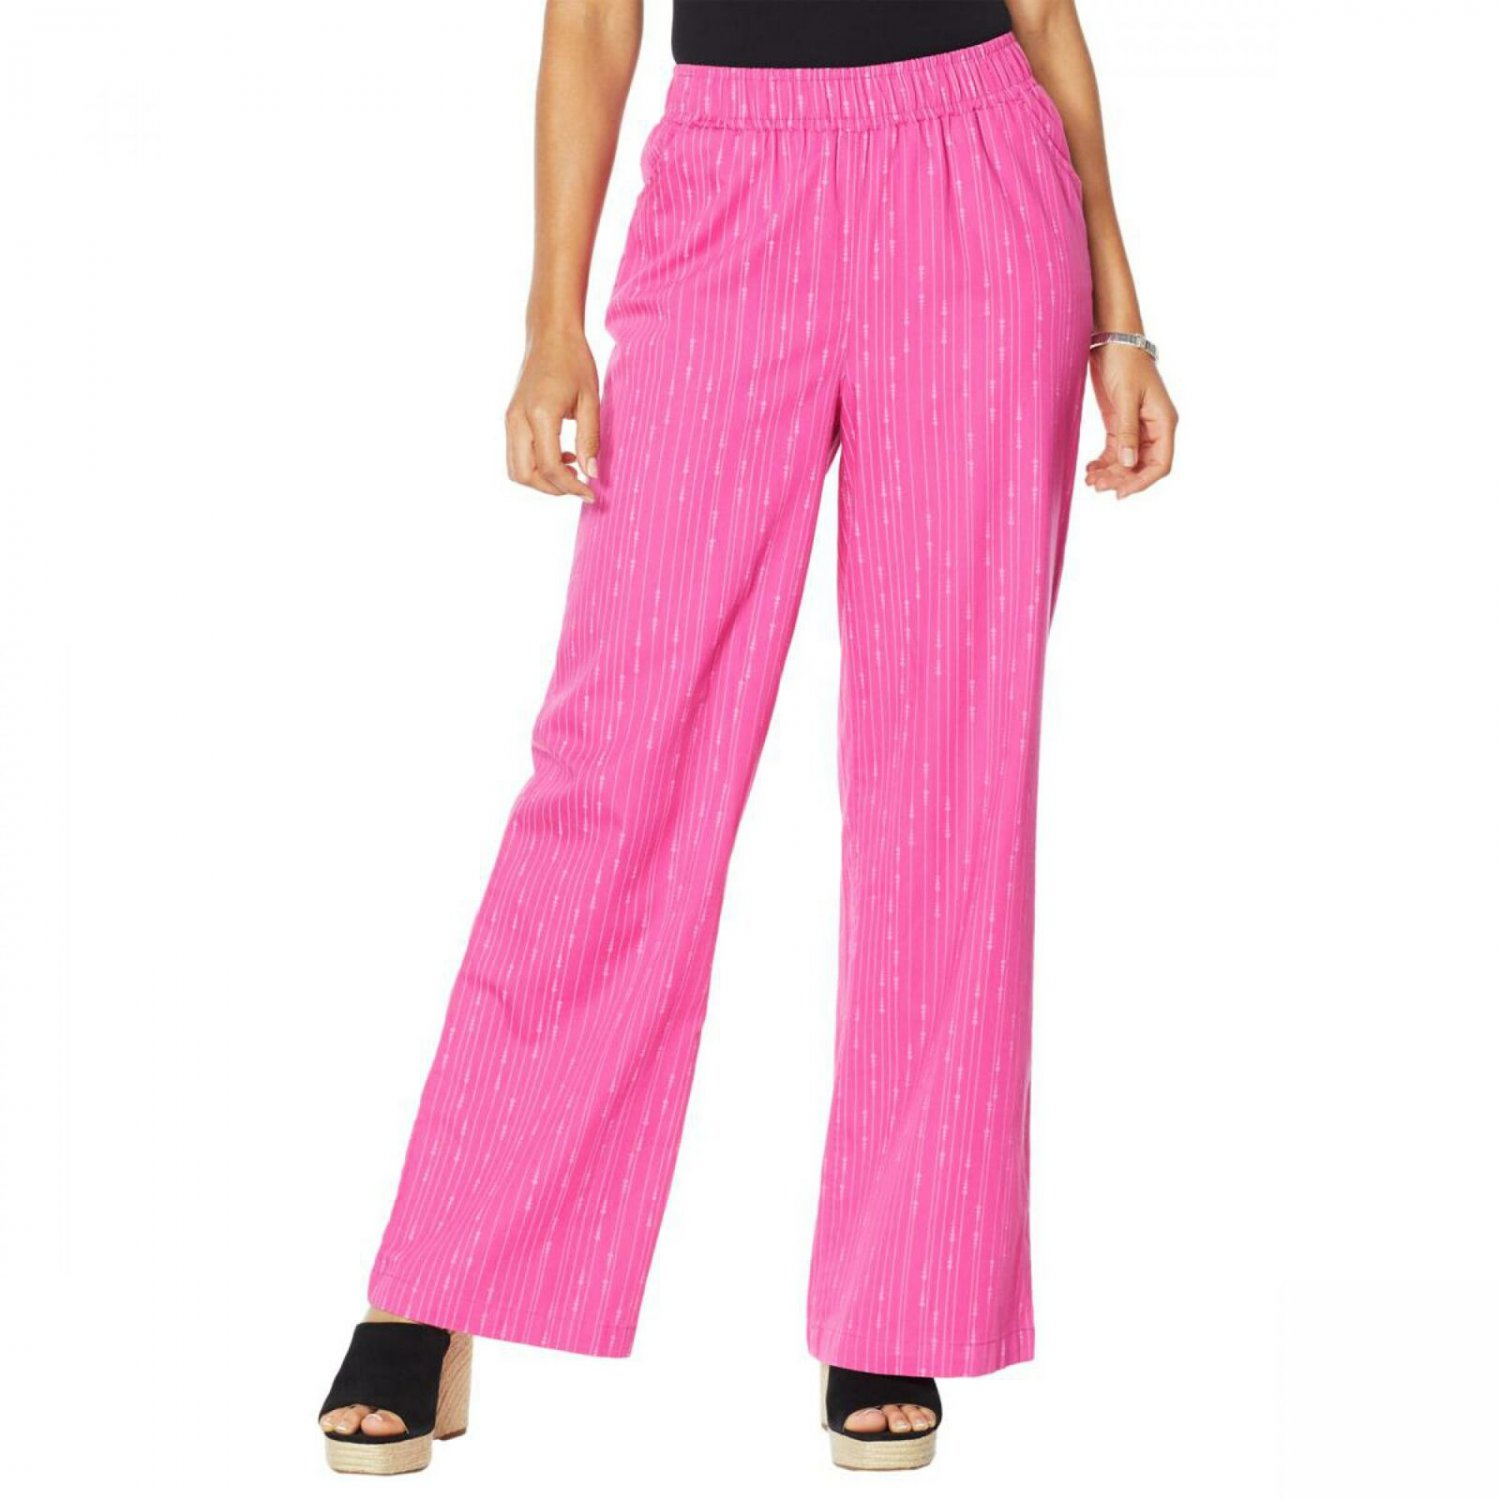 DG2 by Diane Gilman Women's Tall SoftCell Chambray Wide Leg Pants X-Small Tall Magenta Sphere Stripe